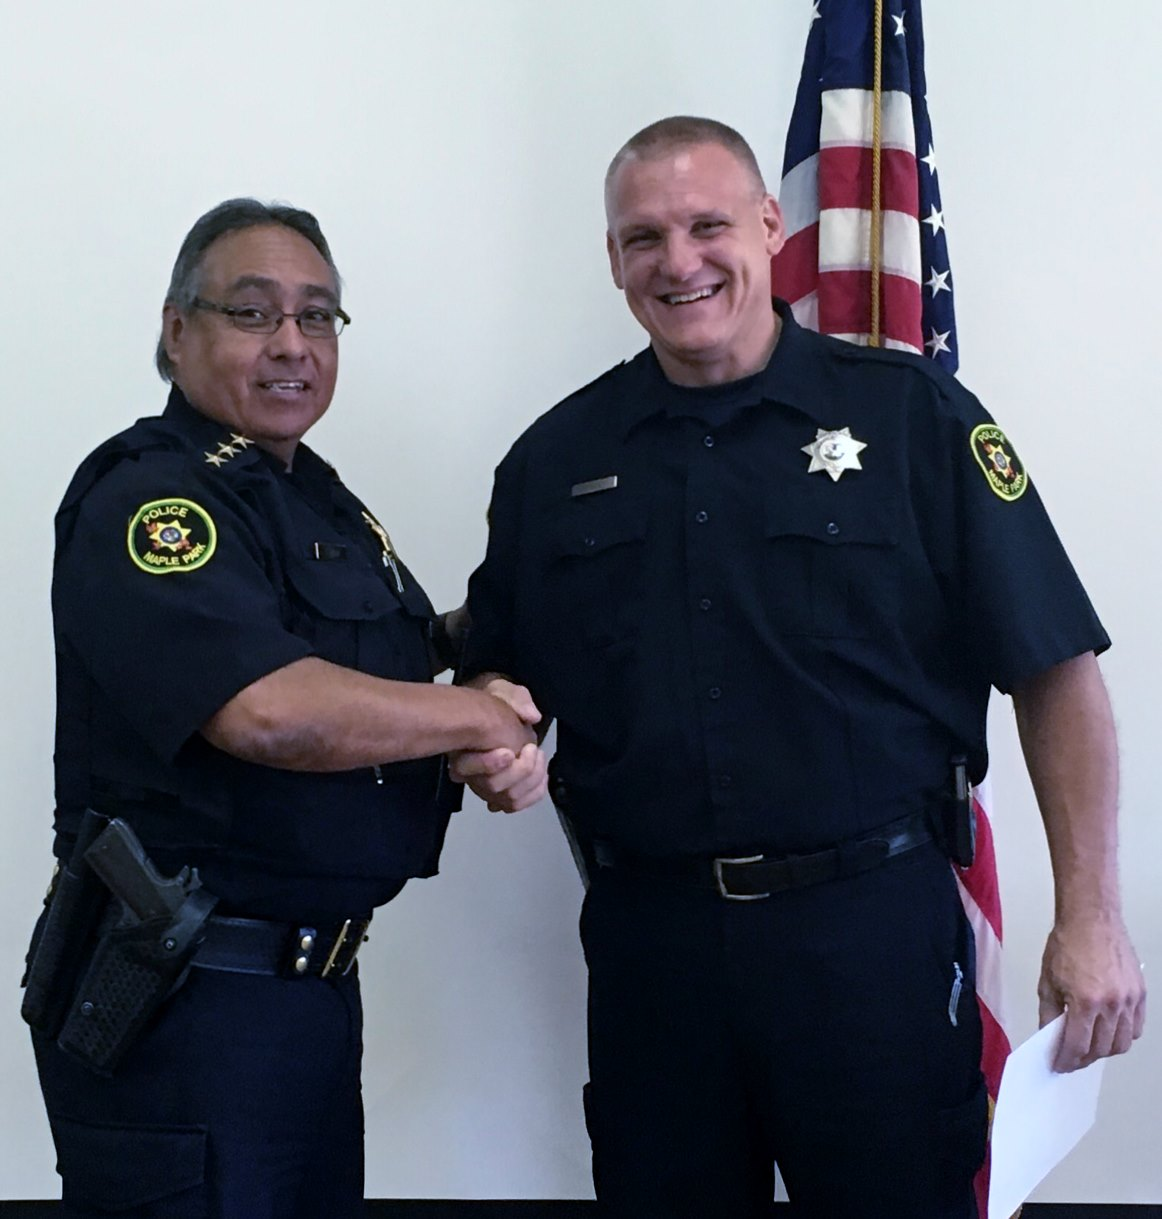 Picture of Officer Shelly & Chief Ayala